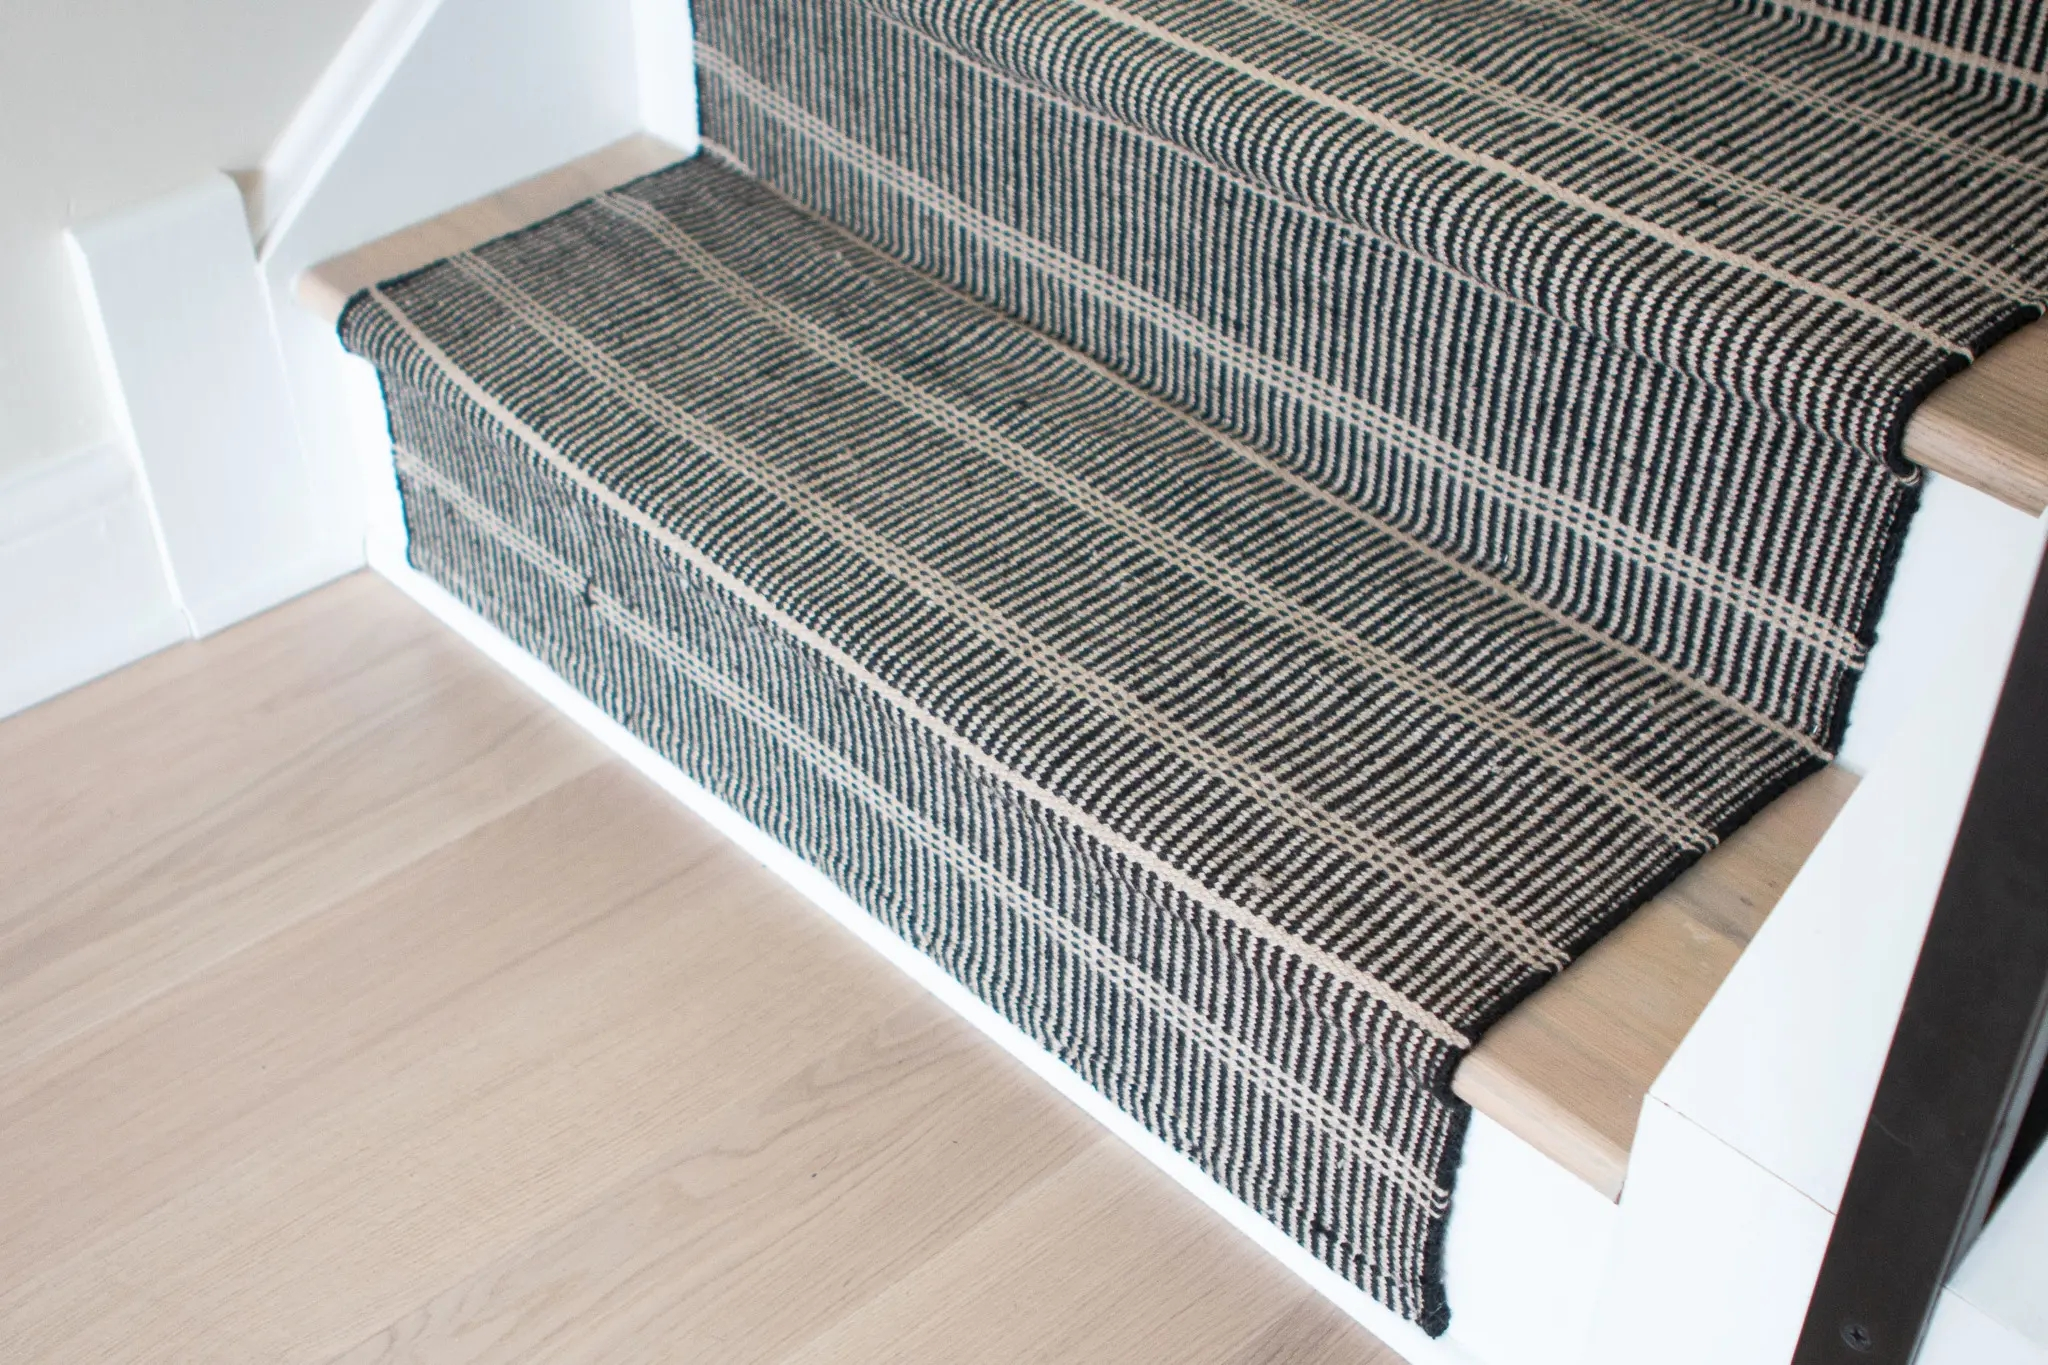 How To Install A Stair Runner On Hardwoods The Diy Playbook   Rug For Bottom Of Stairs   Stairs Floormat   Stair Runners   Flooring   Landing Mat   Rectangle